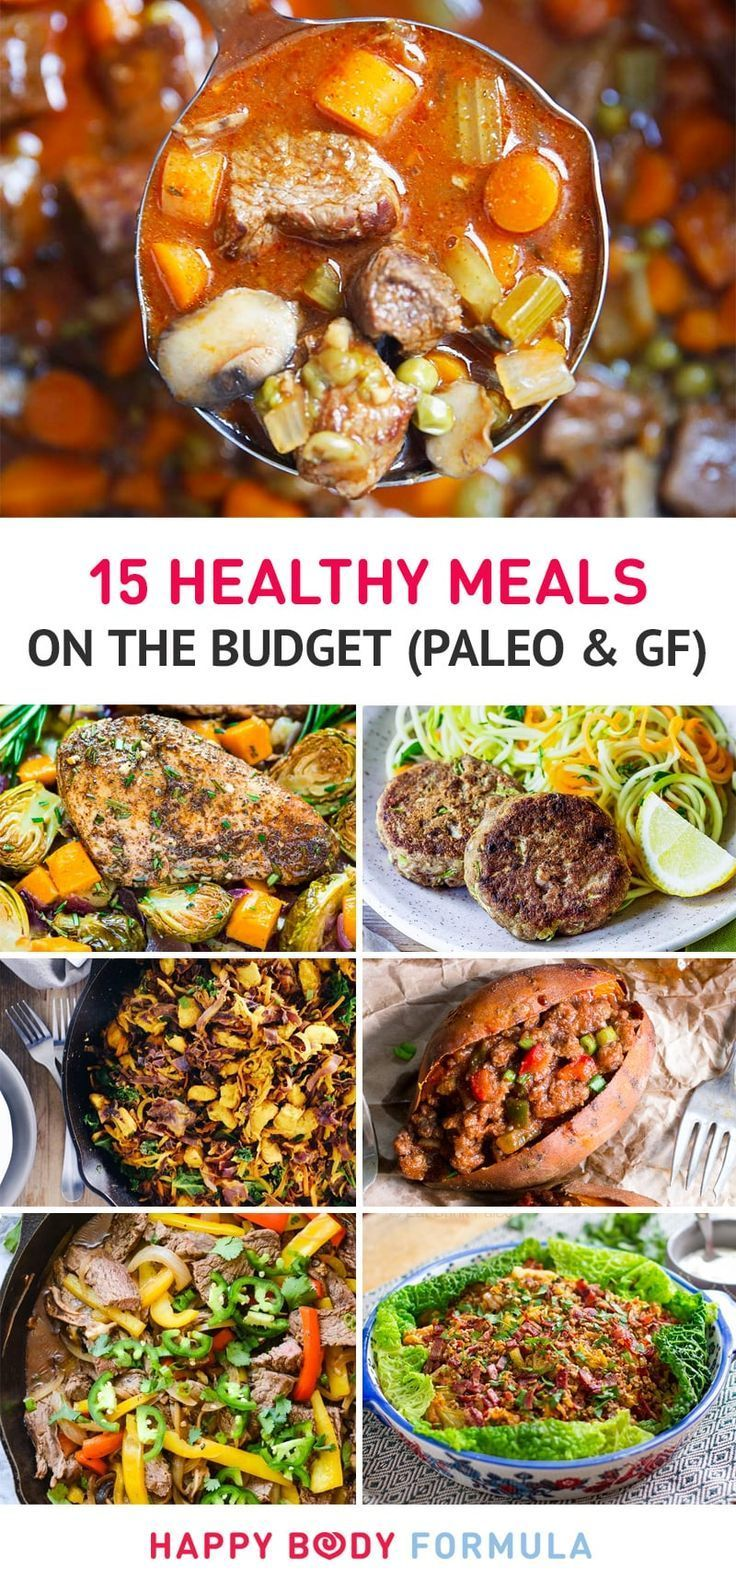 15 Healthy Meals On A Budget Paleo Gluten Free Happy Body Formula Healthy Recipes On A Budget Paleo Meal Plan Paleo On A Budget